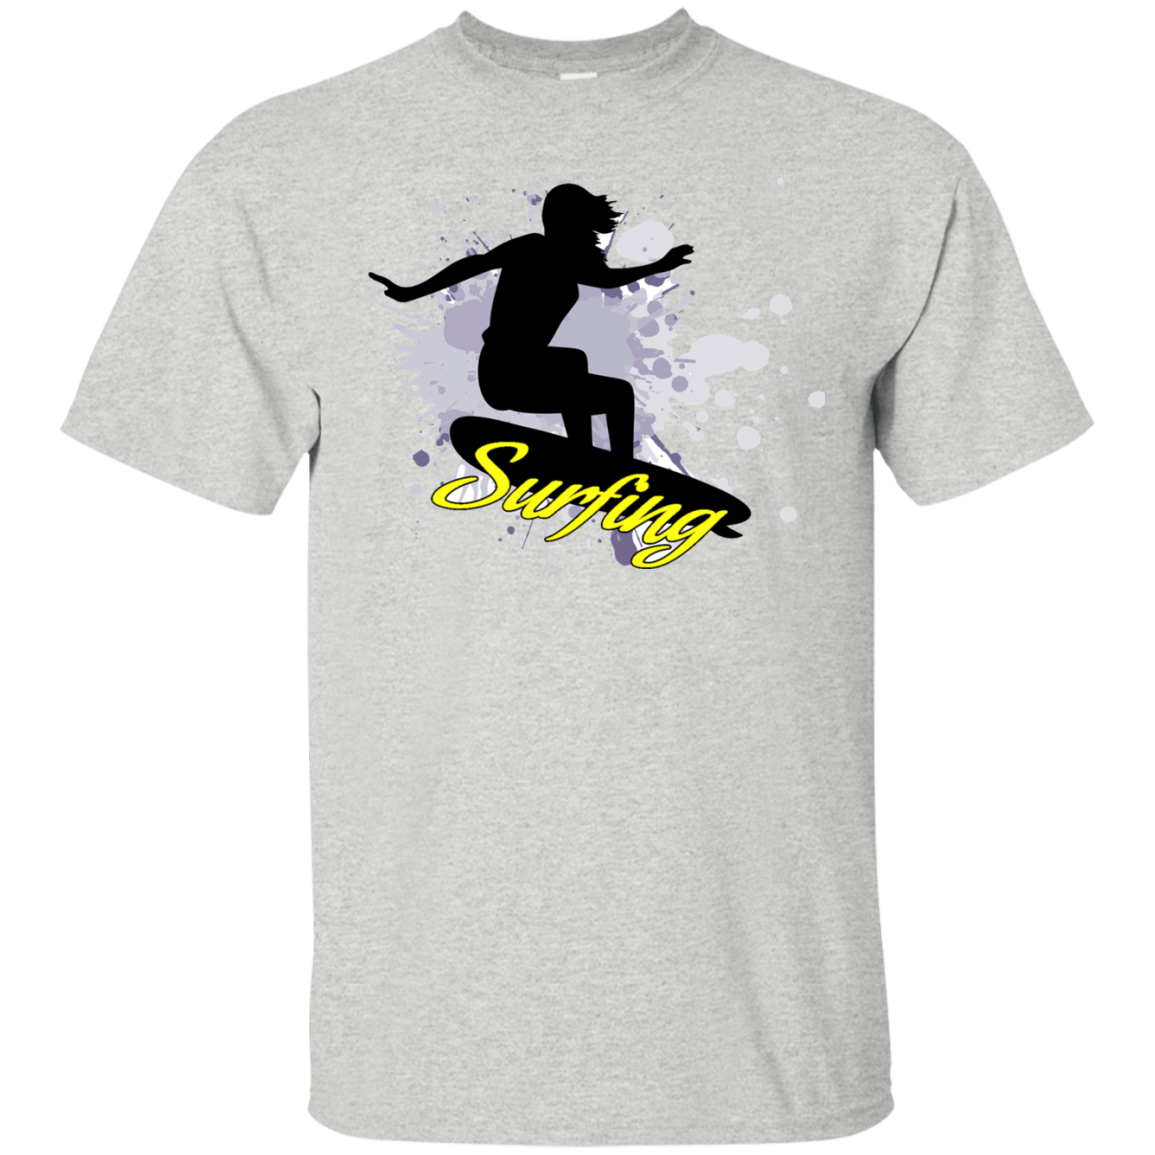 CustomCat T-Shirts Surfing lover T-Shirt